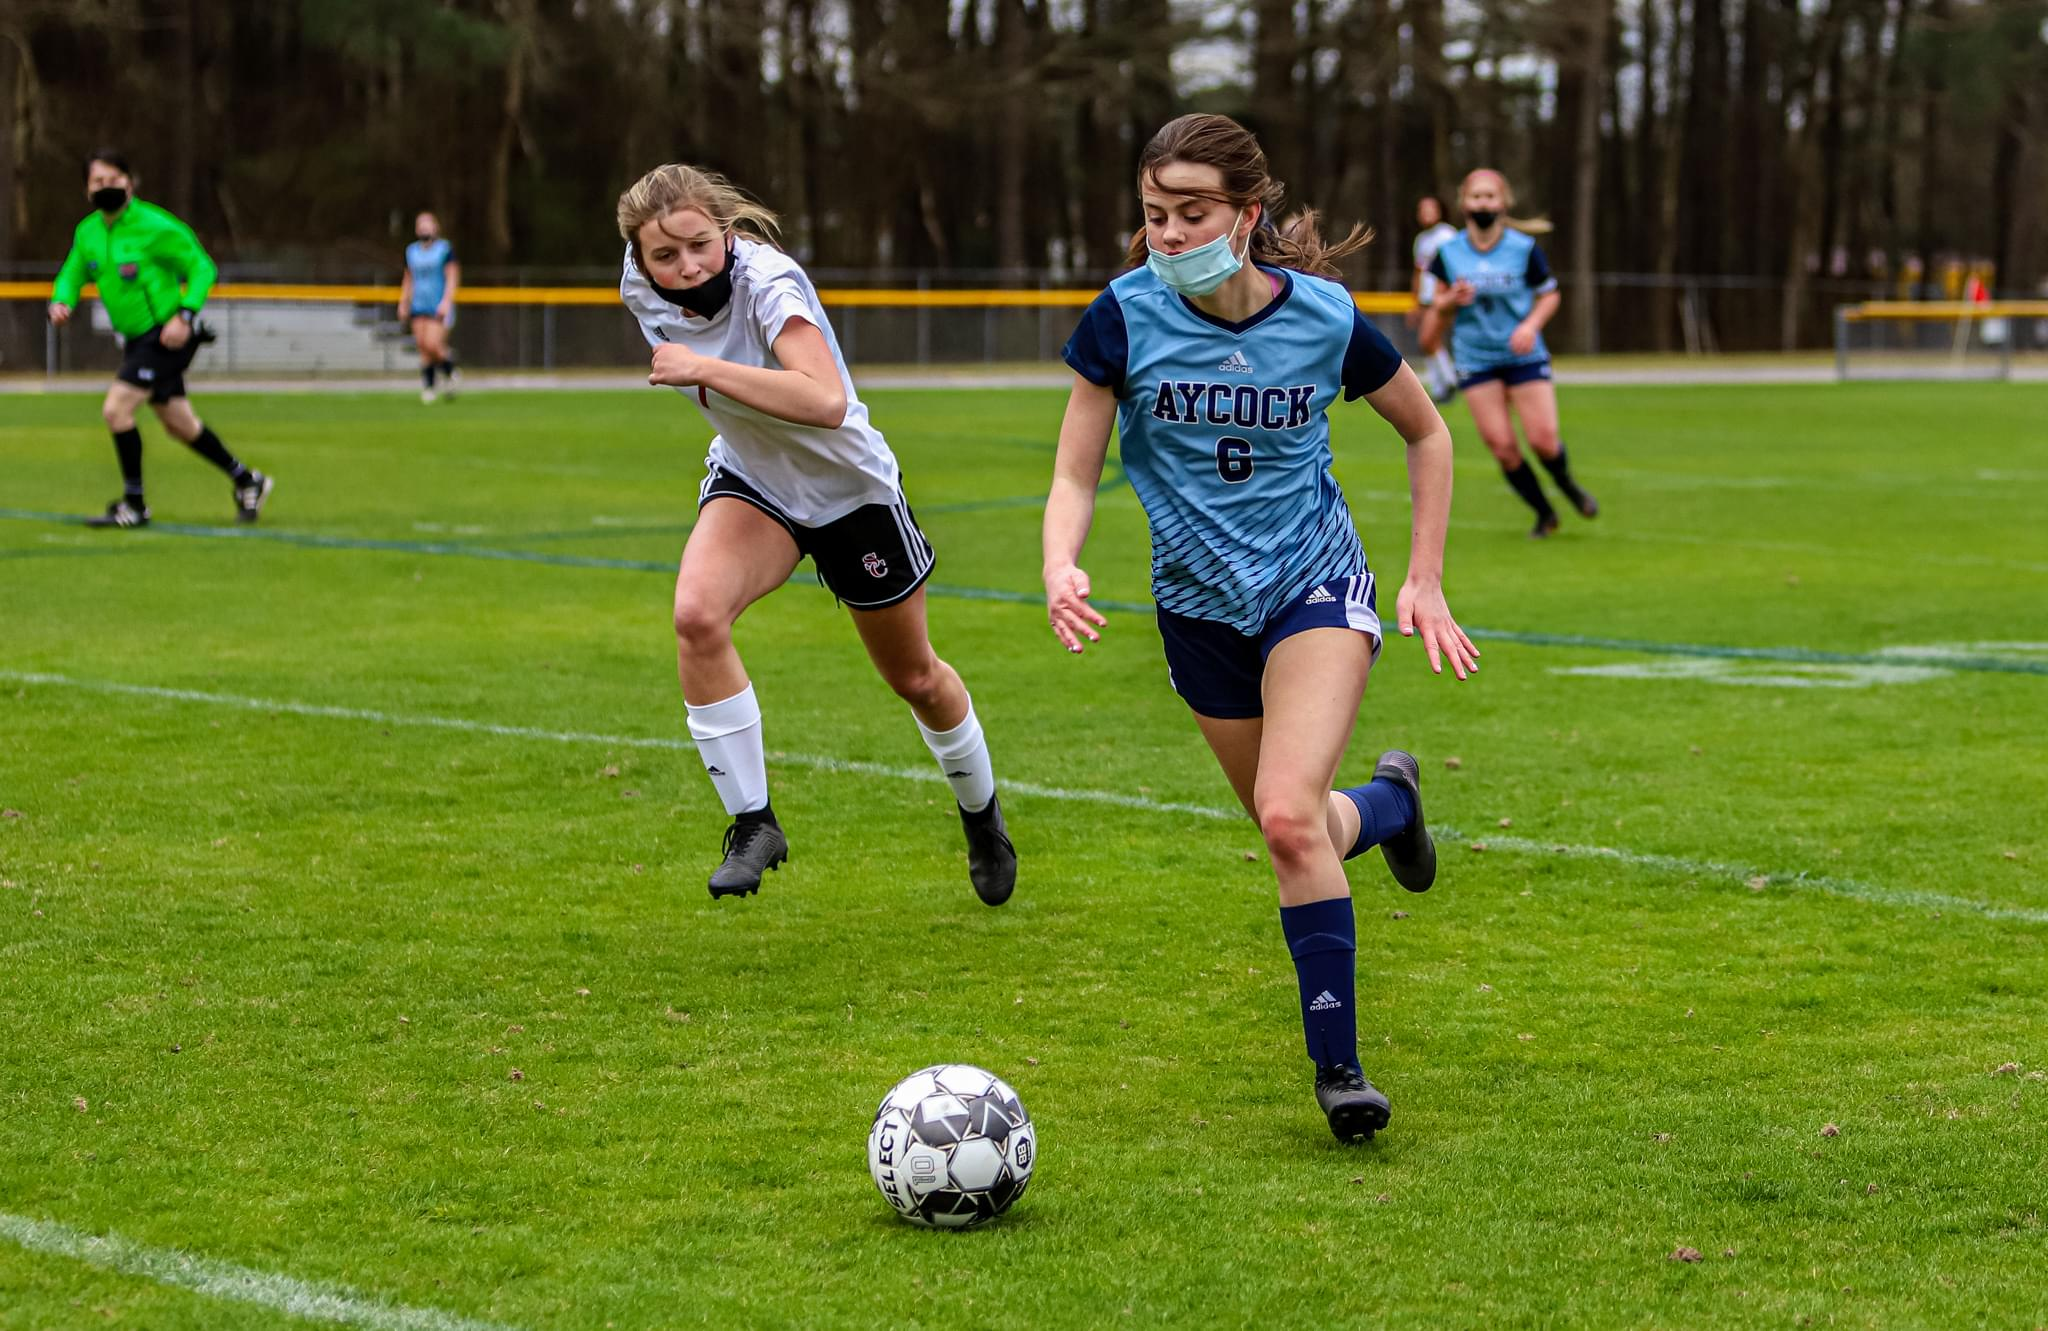 Girls Soccer: C.B. Aycock Opens Its Season Against South Central (PHOTO GALLERY)